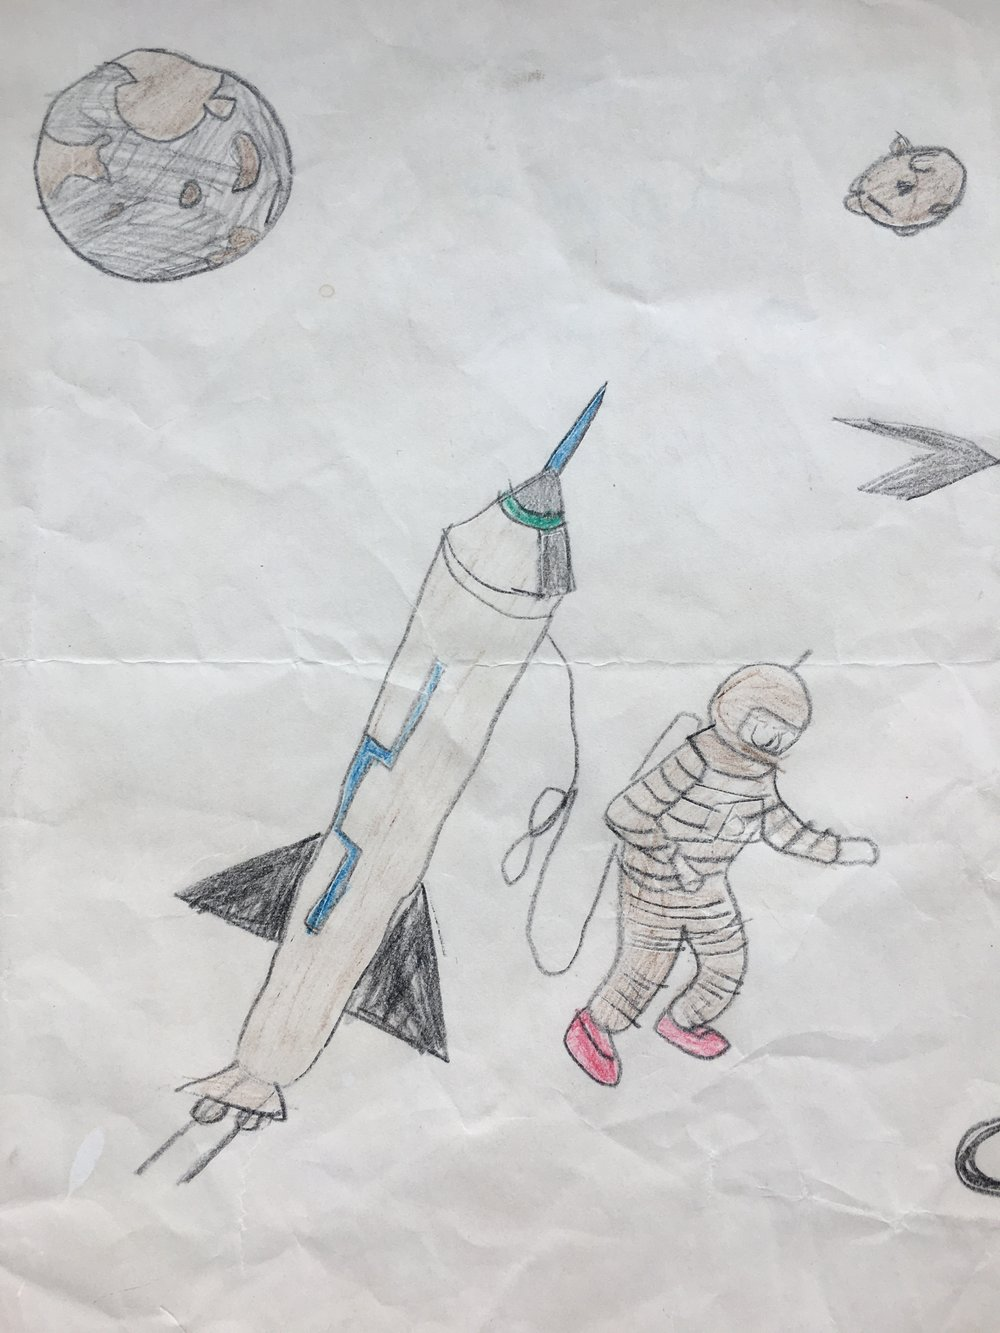 Artwork from age 8: visions of walking in space